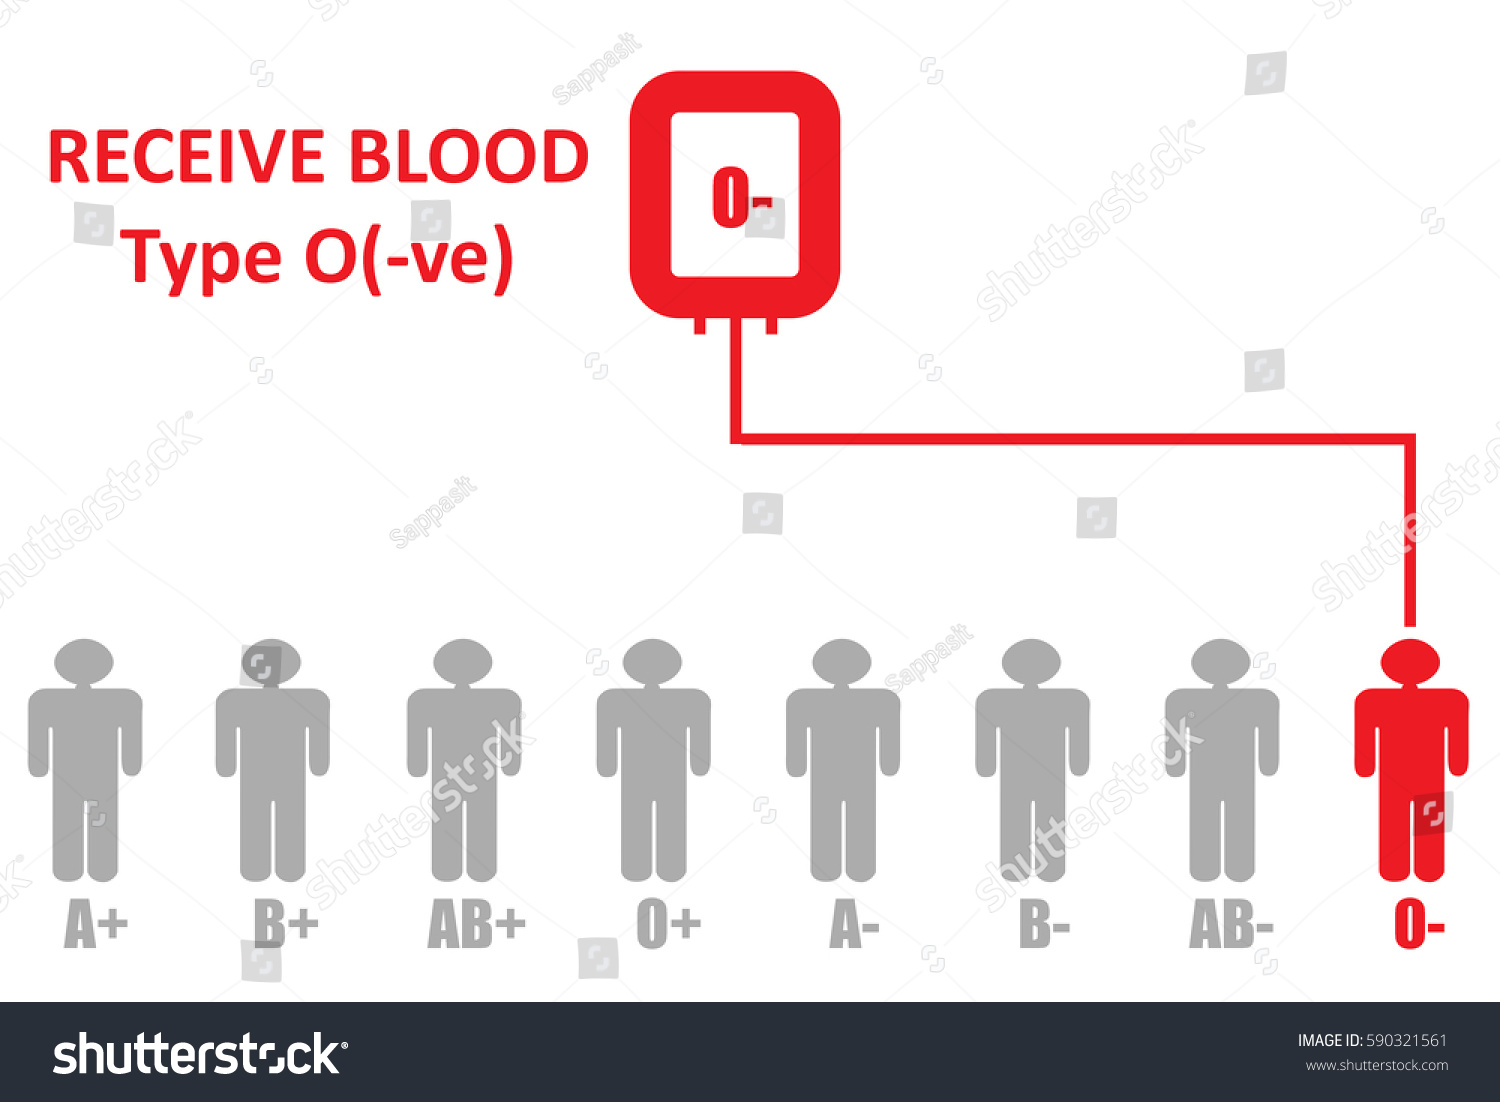 Blood donationblood group type o negative stock illustration blood donationblood group type o negative can receive blood from pooptronica